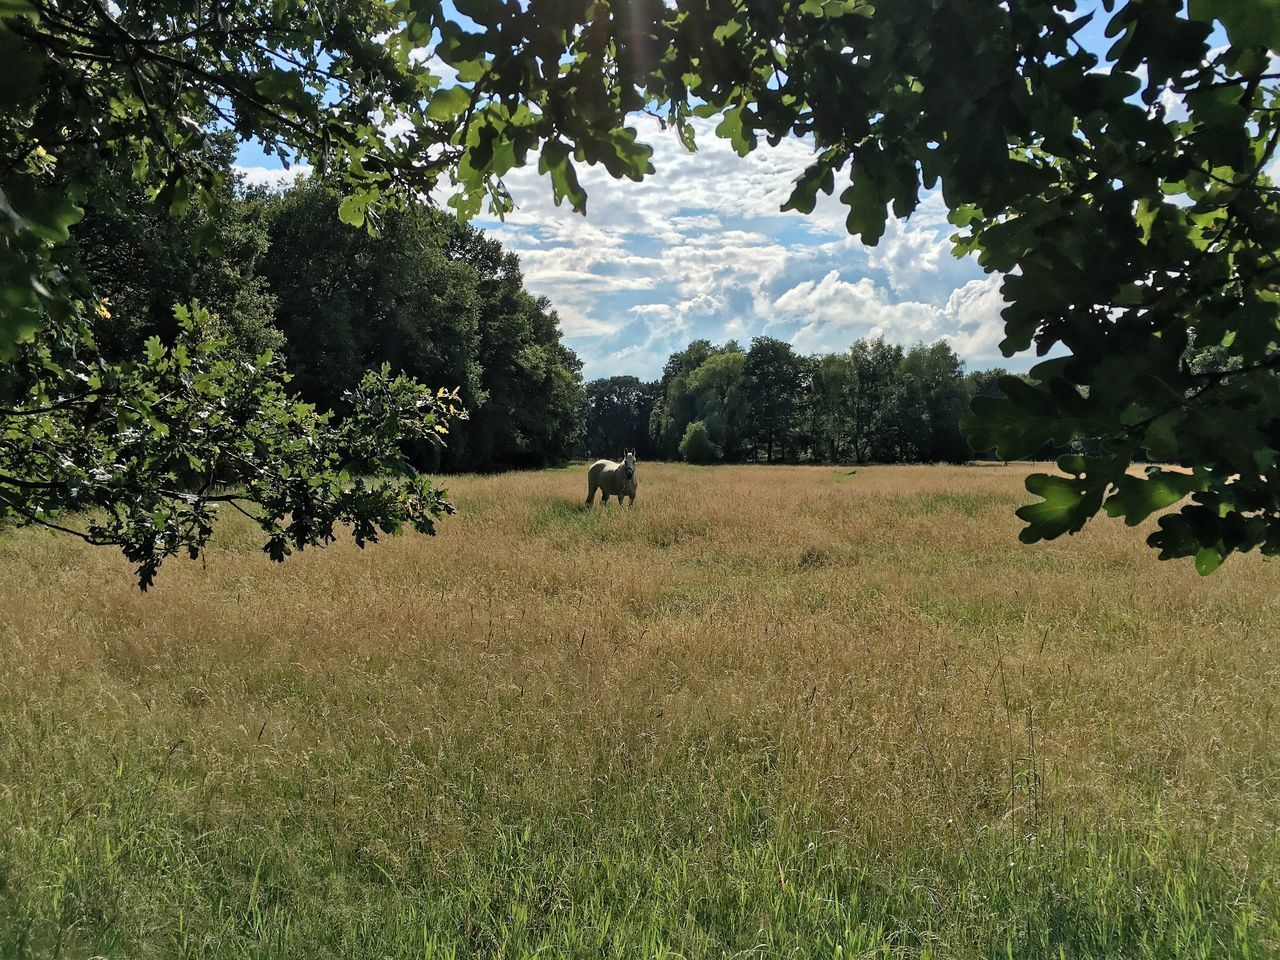 tree, nature, mammal, animal themes, field, one animal, grass, growth, domestic animals, landscape, plant, no people, day, outdoors, beauty in nature, sky